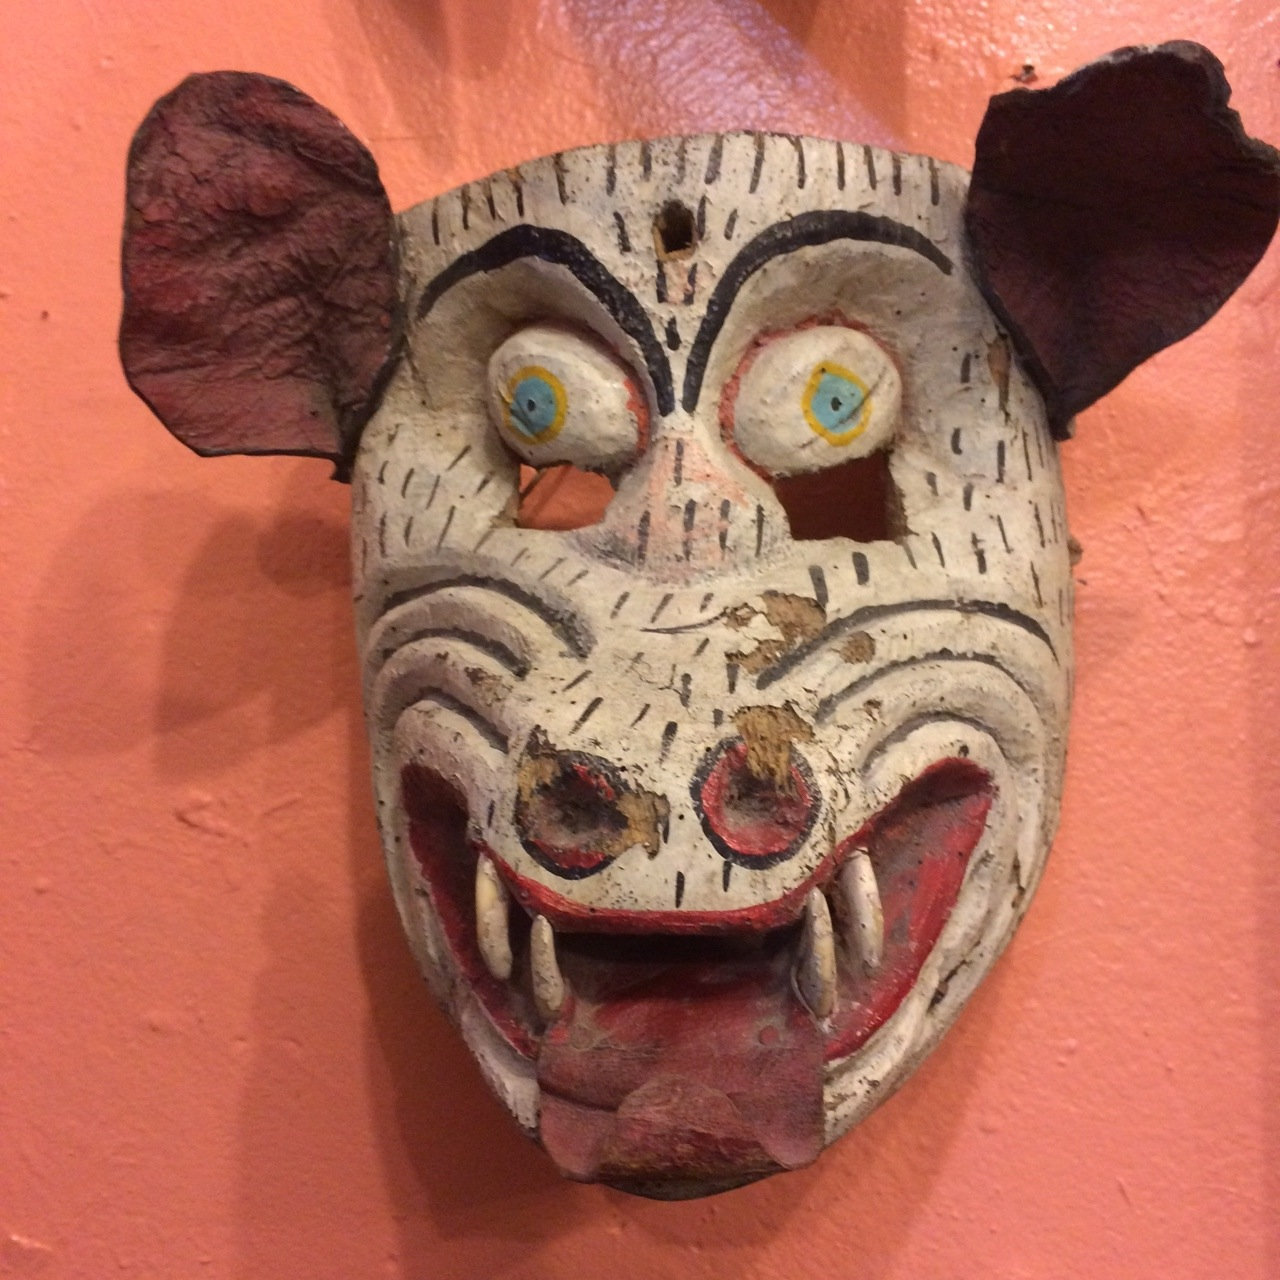 New Acquisitions: Pre-Columbian Figures and Vintage Mexican Masks